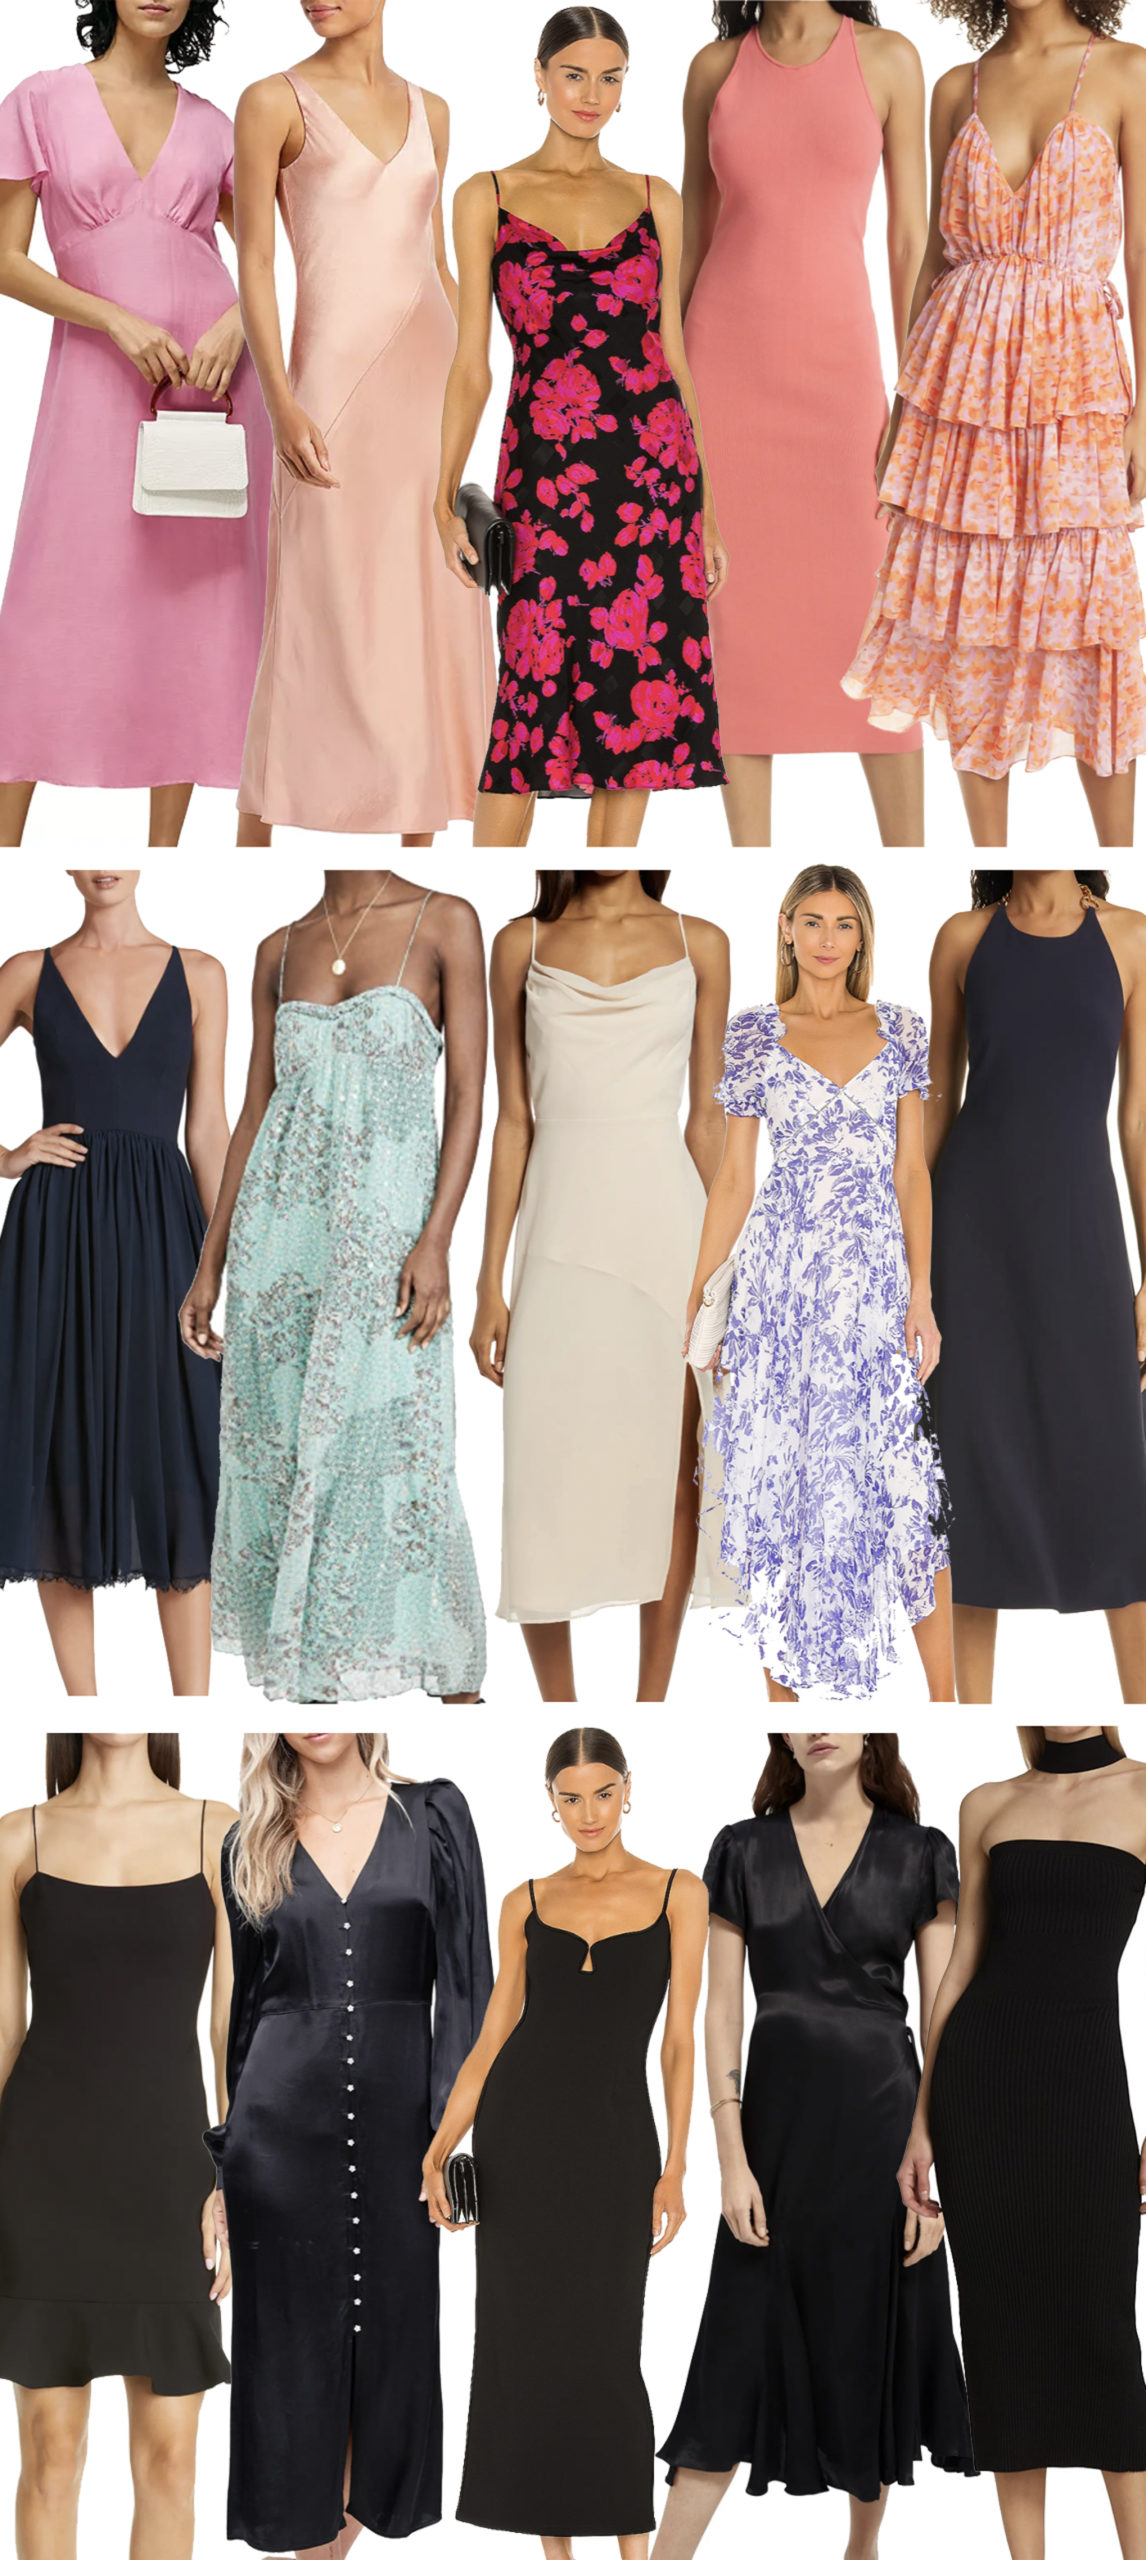 Semi Formal Wedding Guest Dresses   With Love From Kat